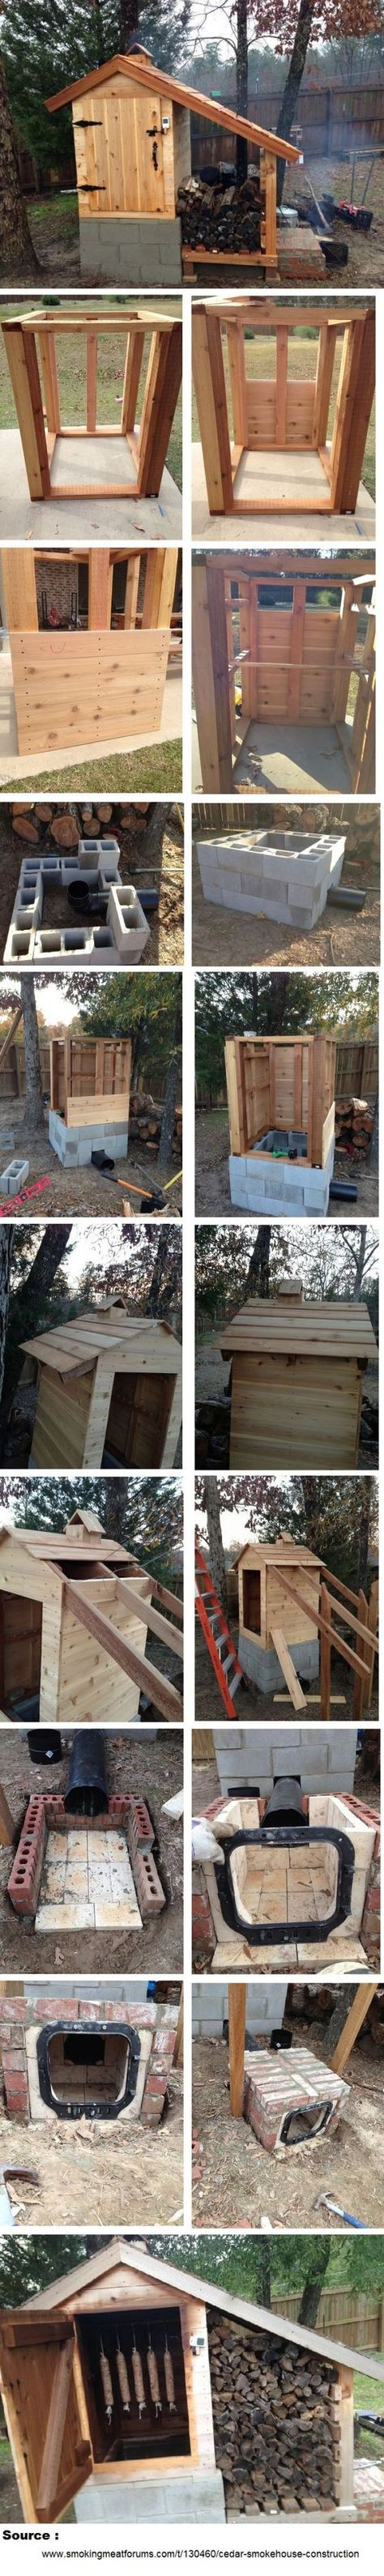 Learn How To Build A Smokehouse With This Awesome Project! from ...